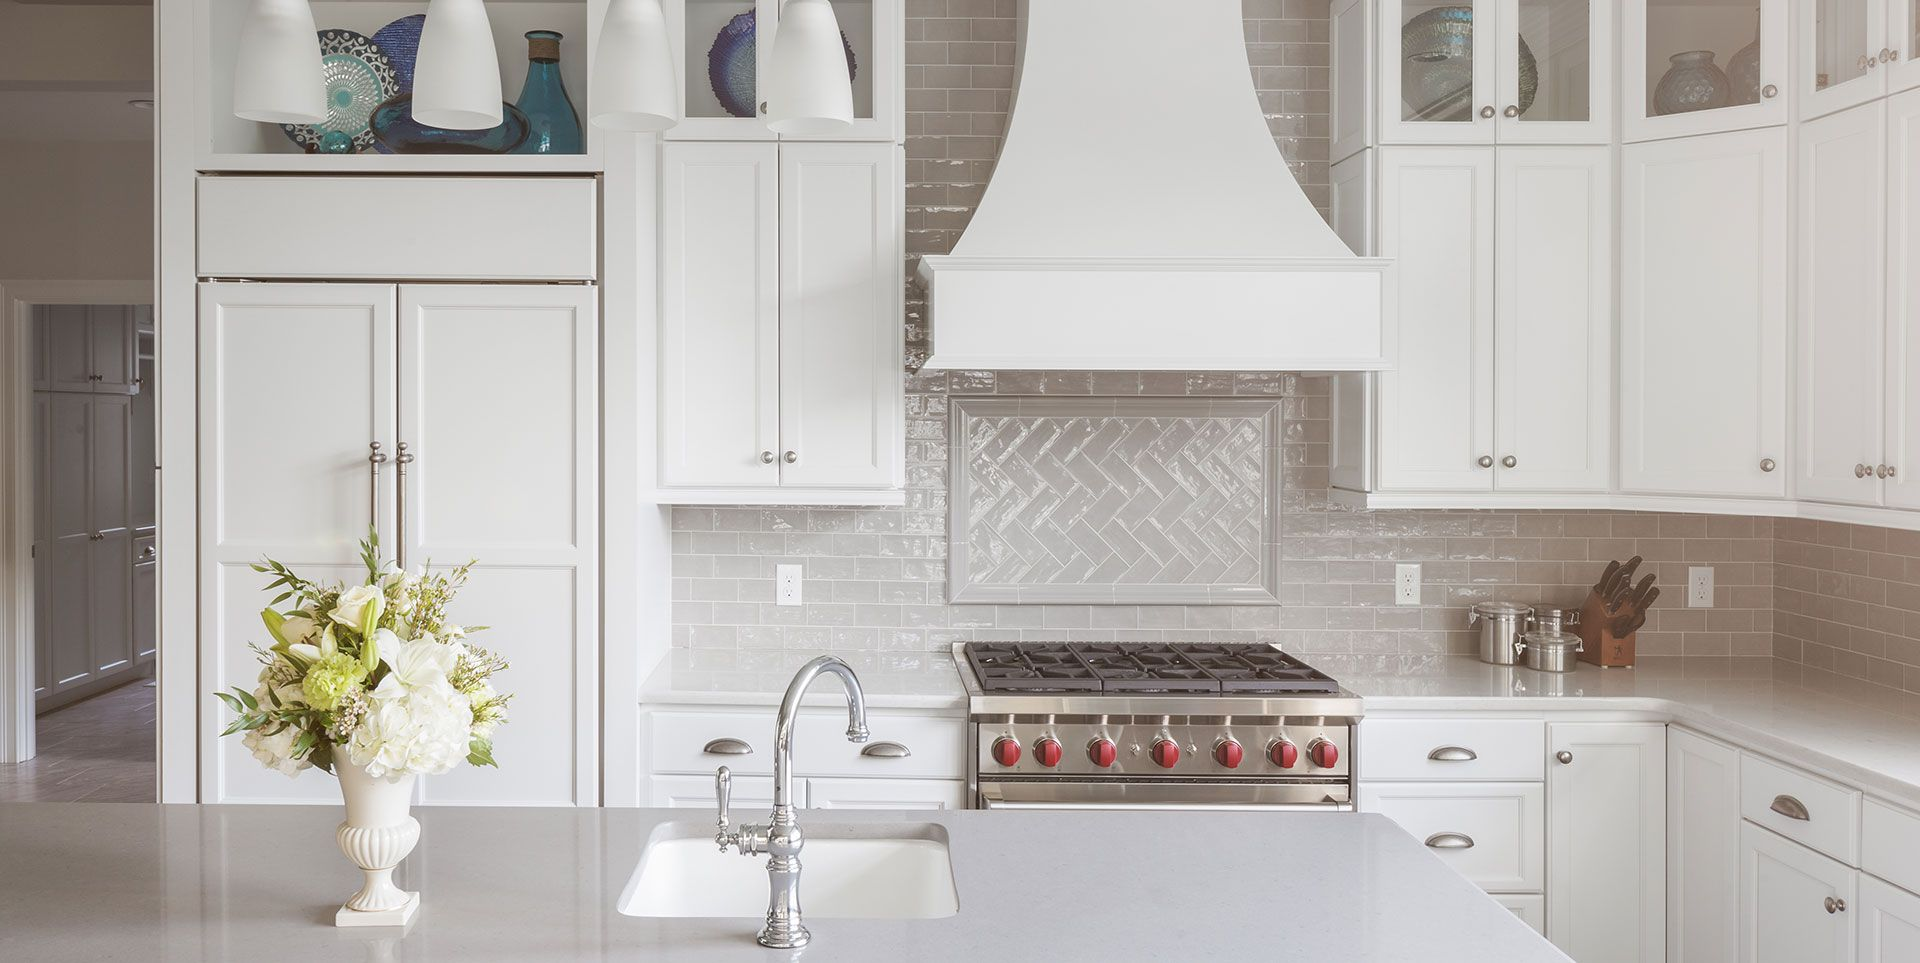 50 Subway Tiles Kitchen Picture Collection Kitchen Bath Gallery Kitchen Tiles Kitchen Pictures